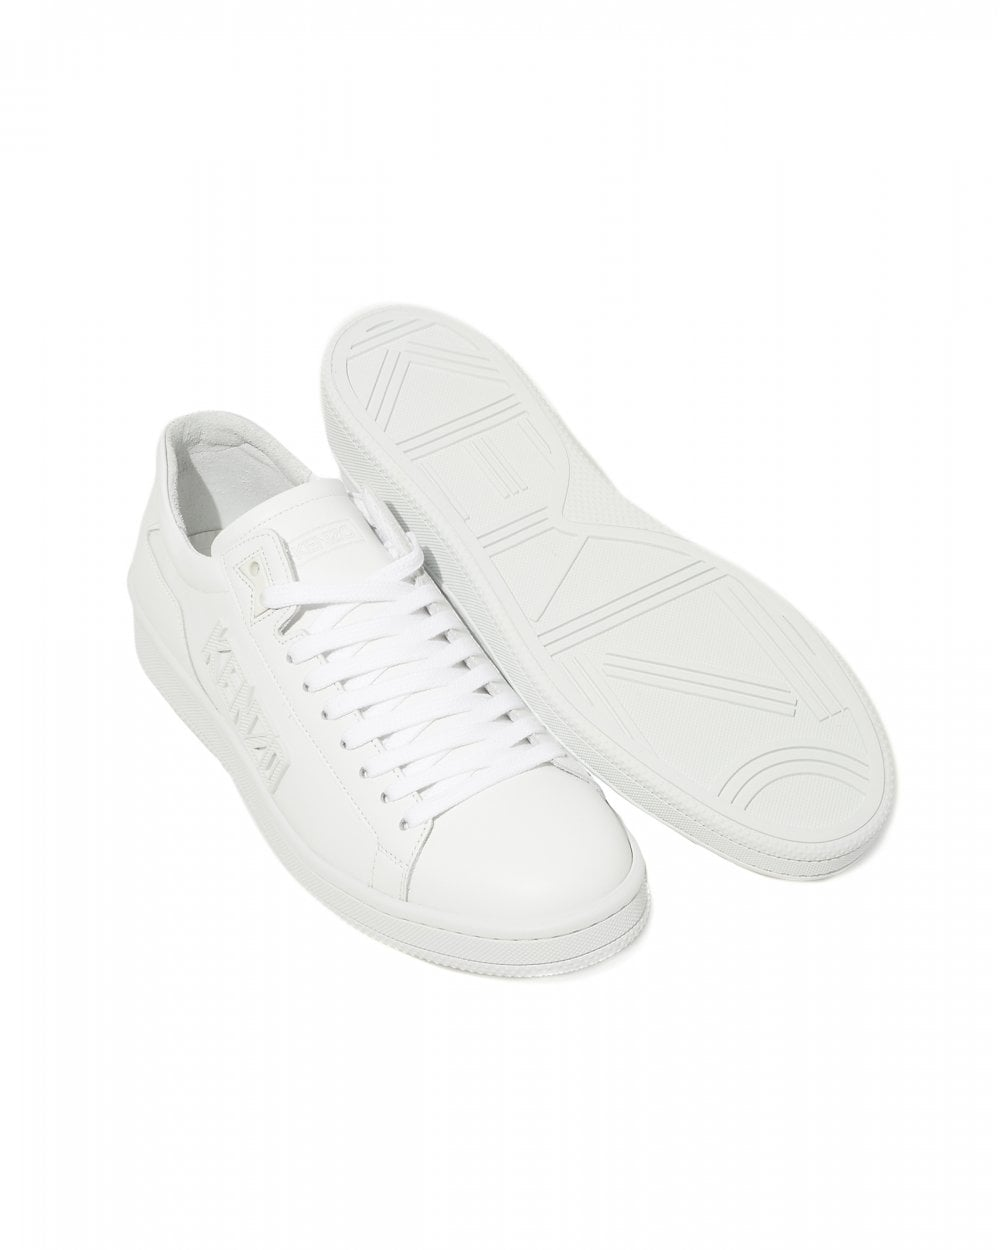 75a3487103 Mens Low Top Tennix Trainers, White Logo Sneakers